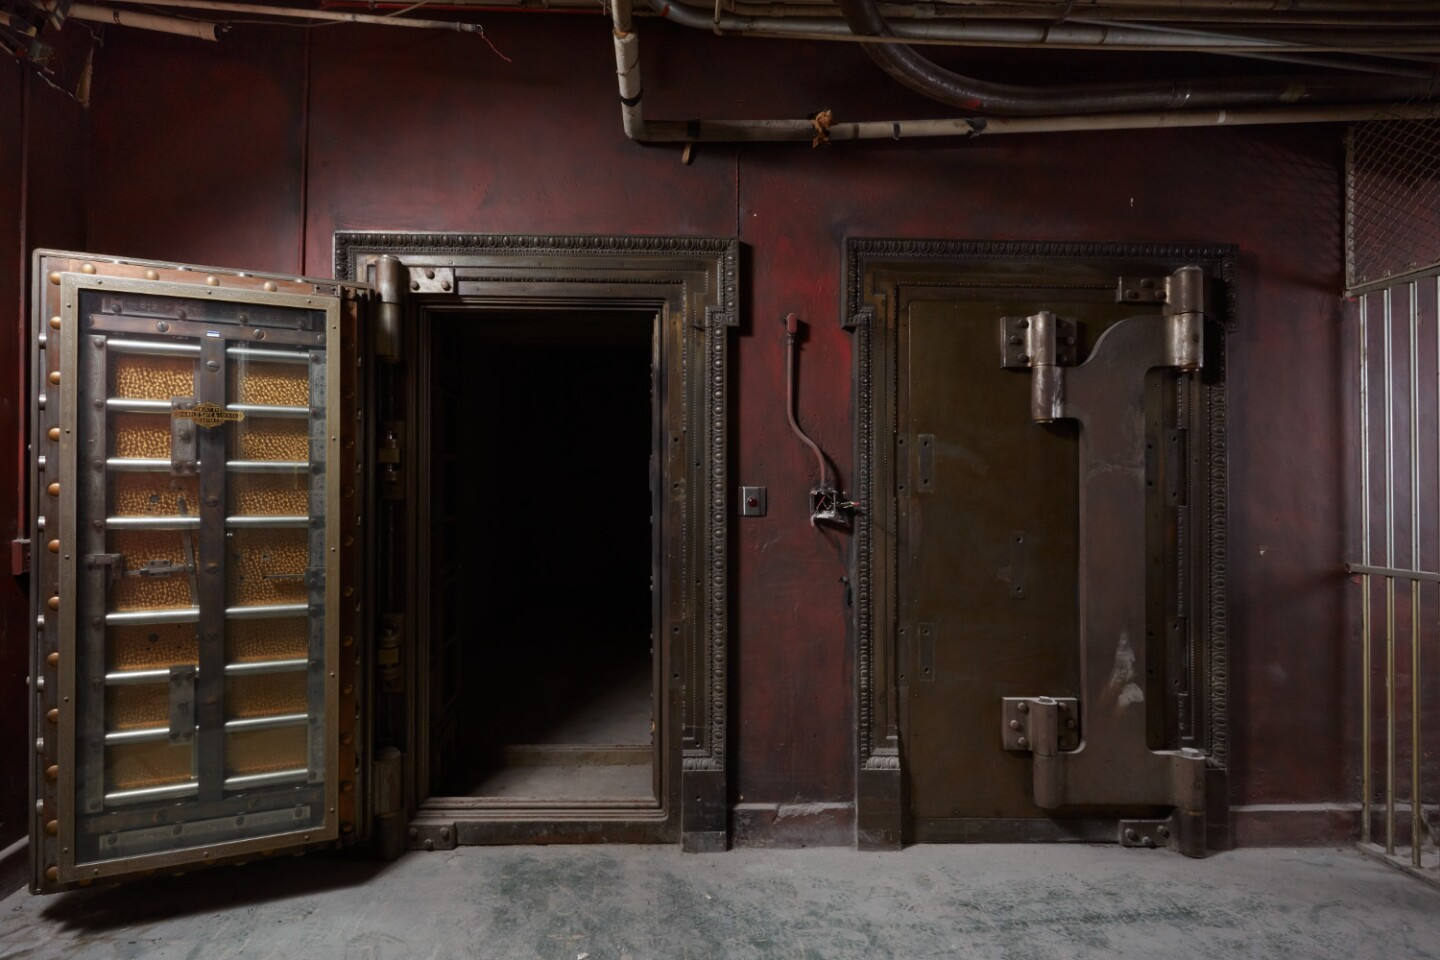 Vaults at the Main Museum of Los Angeles Art